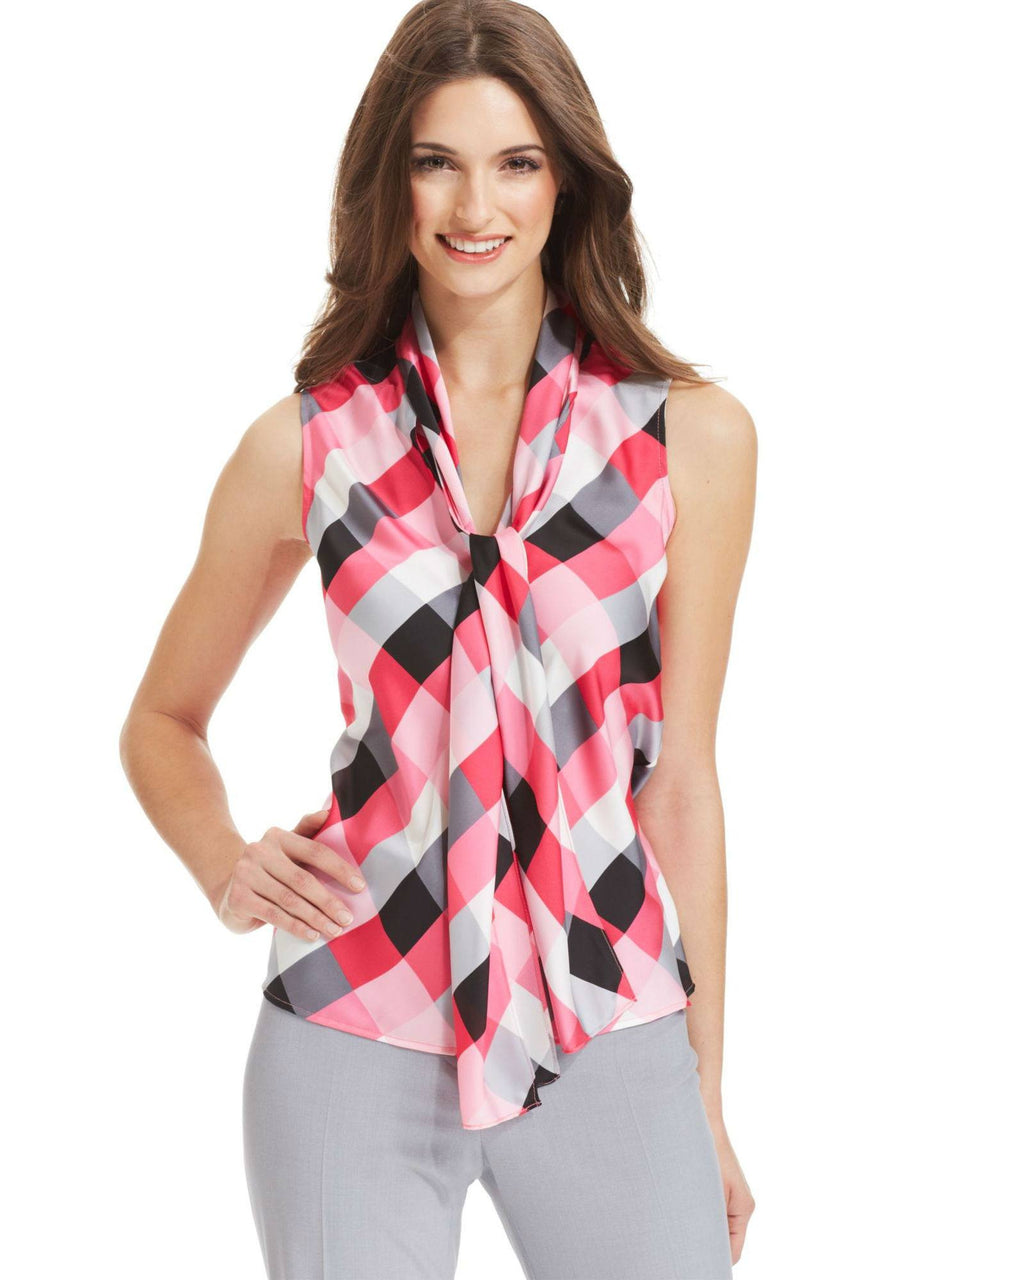 Nine West Printed Sleeveless Tie-Neck Blouse-NINE WEST-Fashionbarn shop